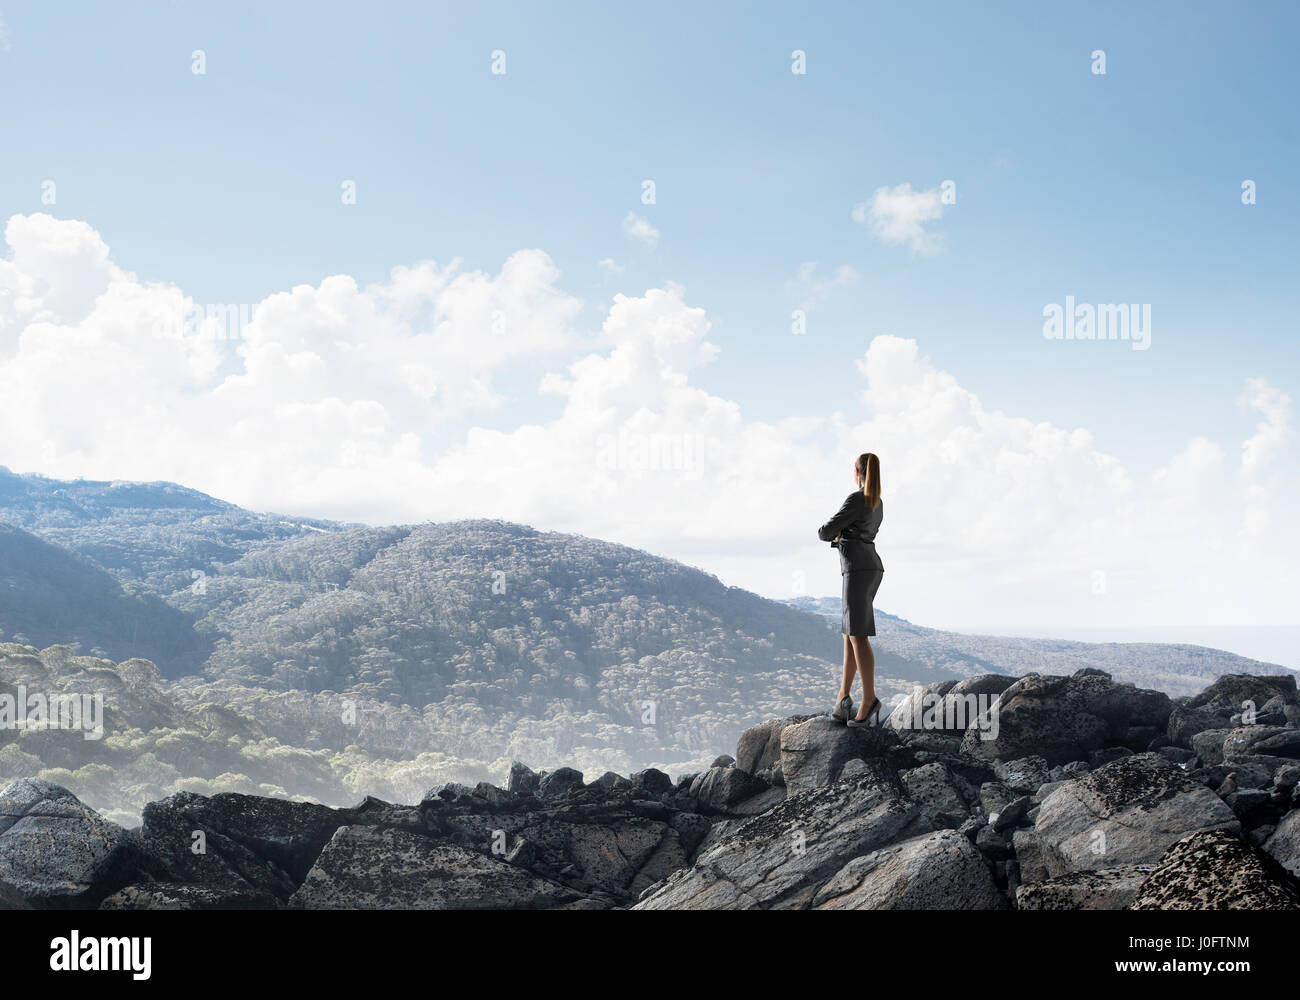 Achieving top of success - Stock Image